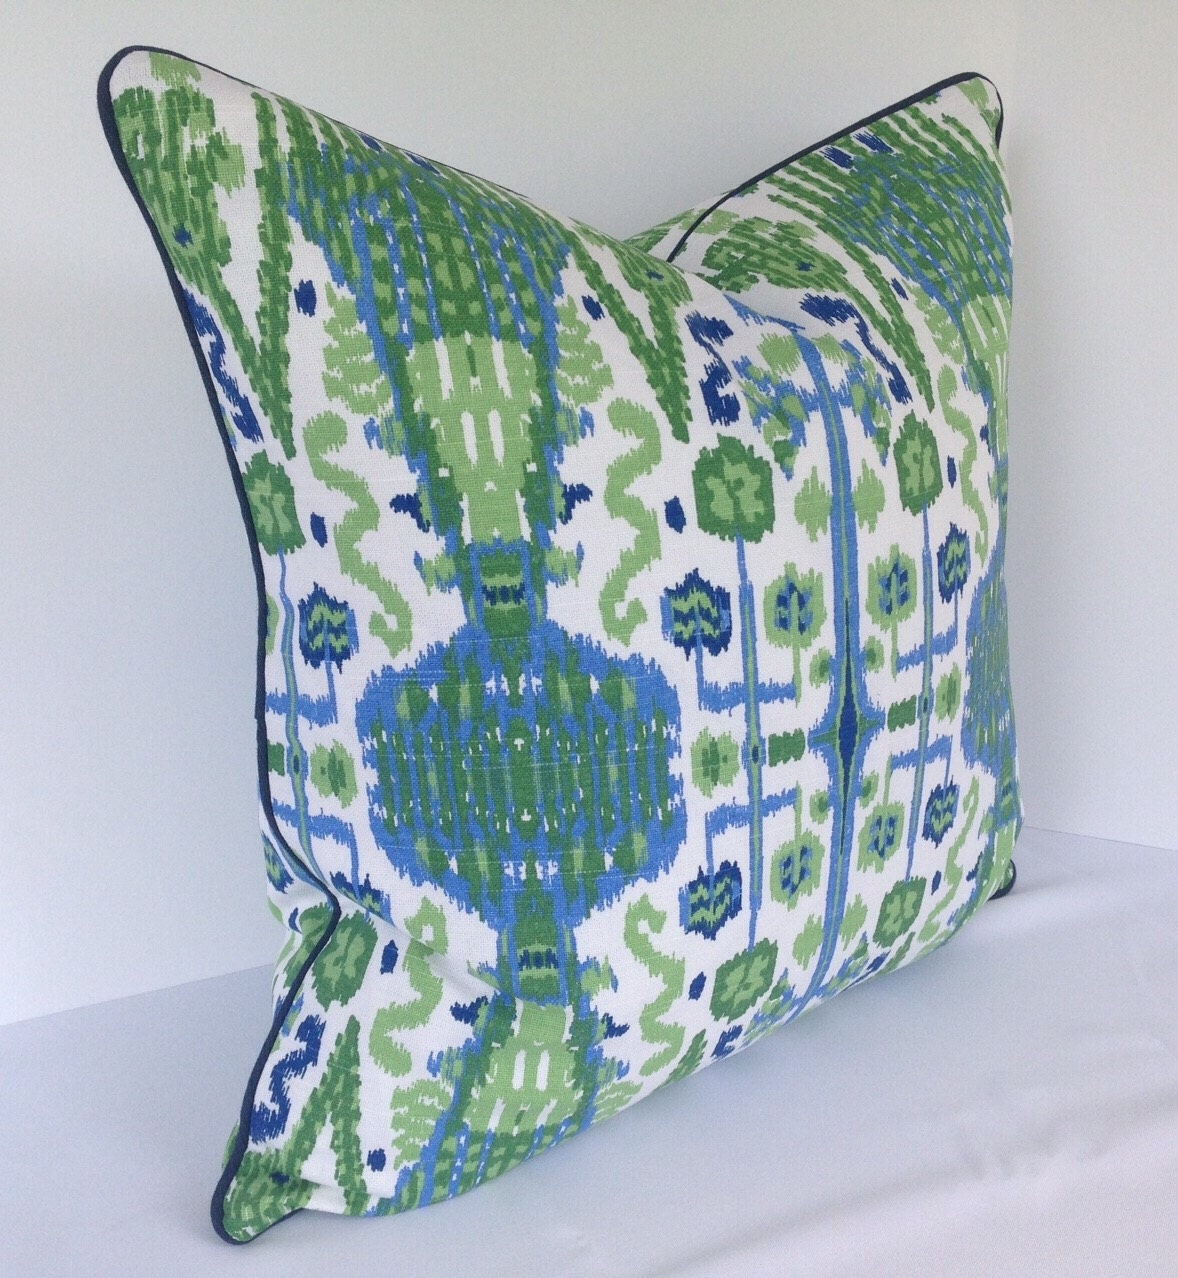 How To Make Decorative Pillows With Piping : Decorative Pillow Covers in Lacefield Bombay Ikat with Piping